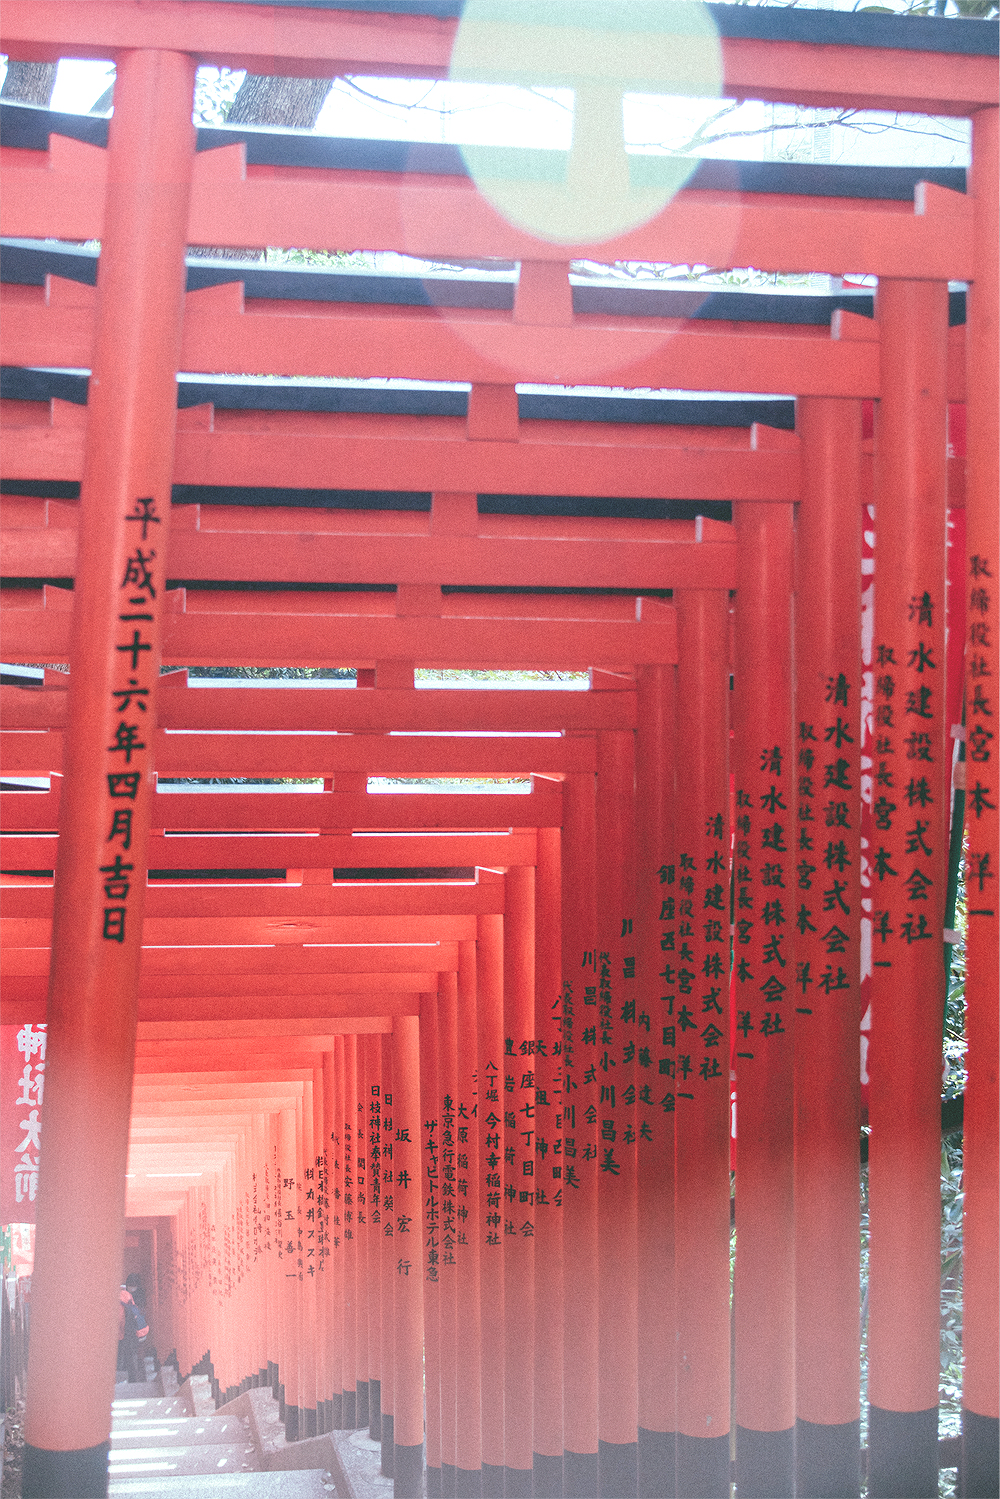 Of course, the Hie Shrine famous Torii Passage was the main reason for our visit.